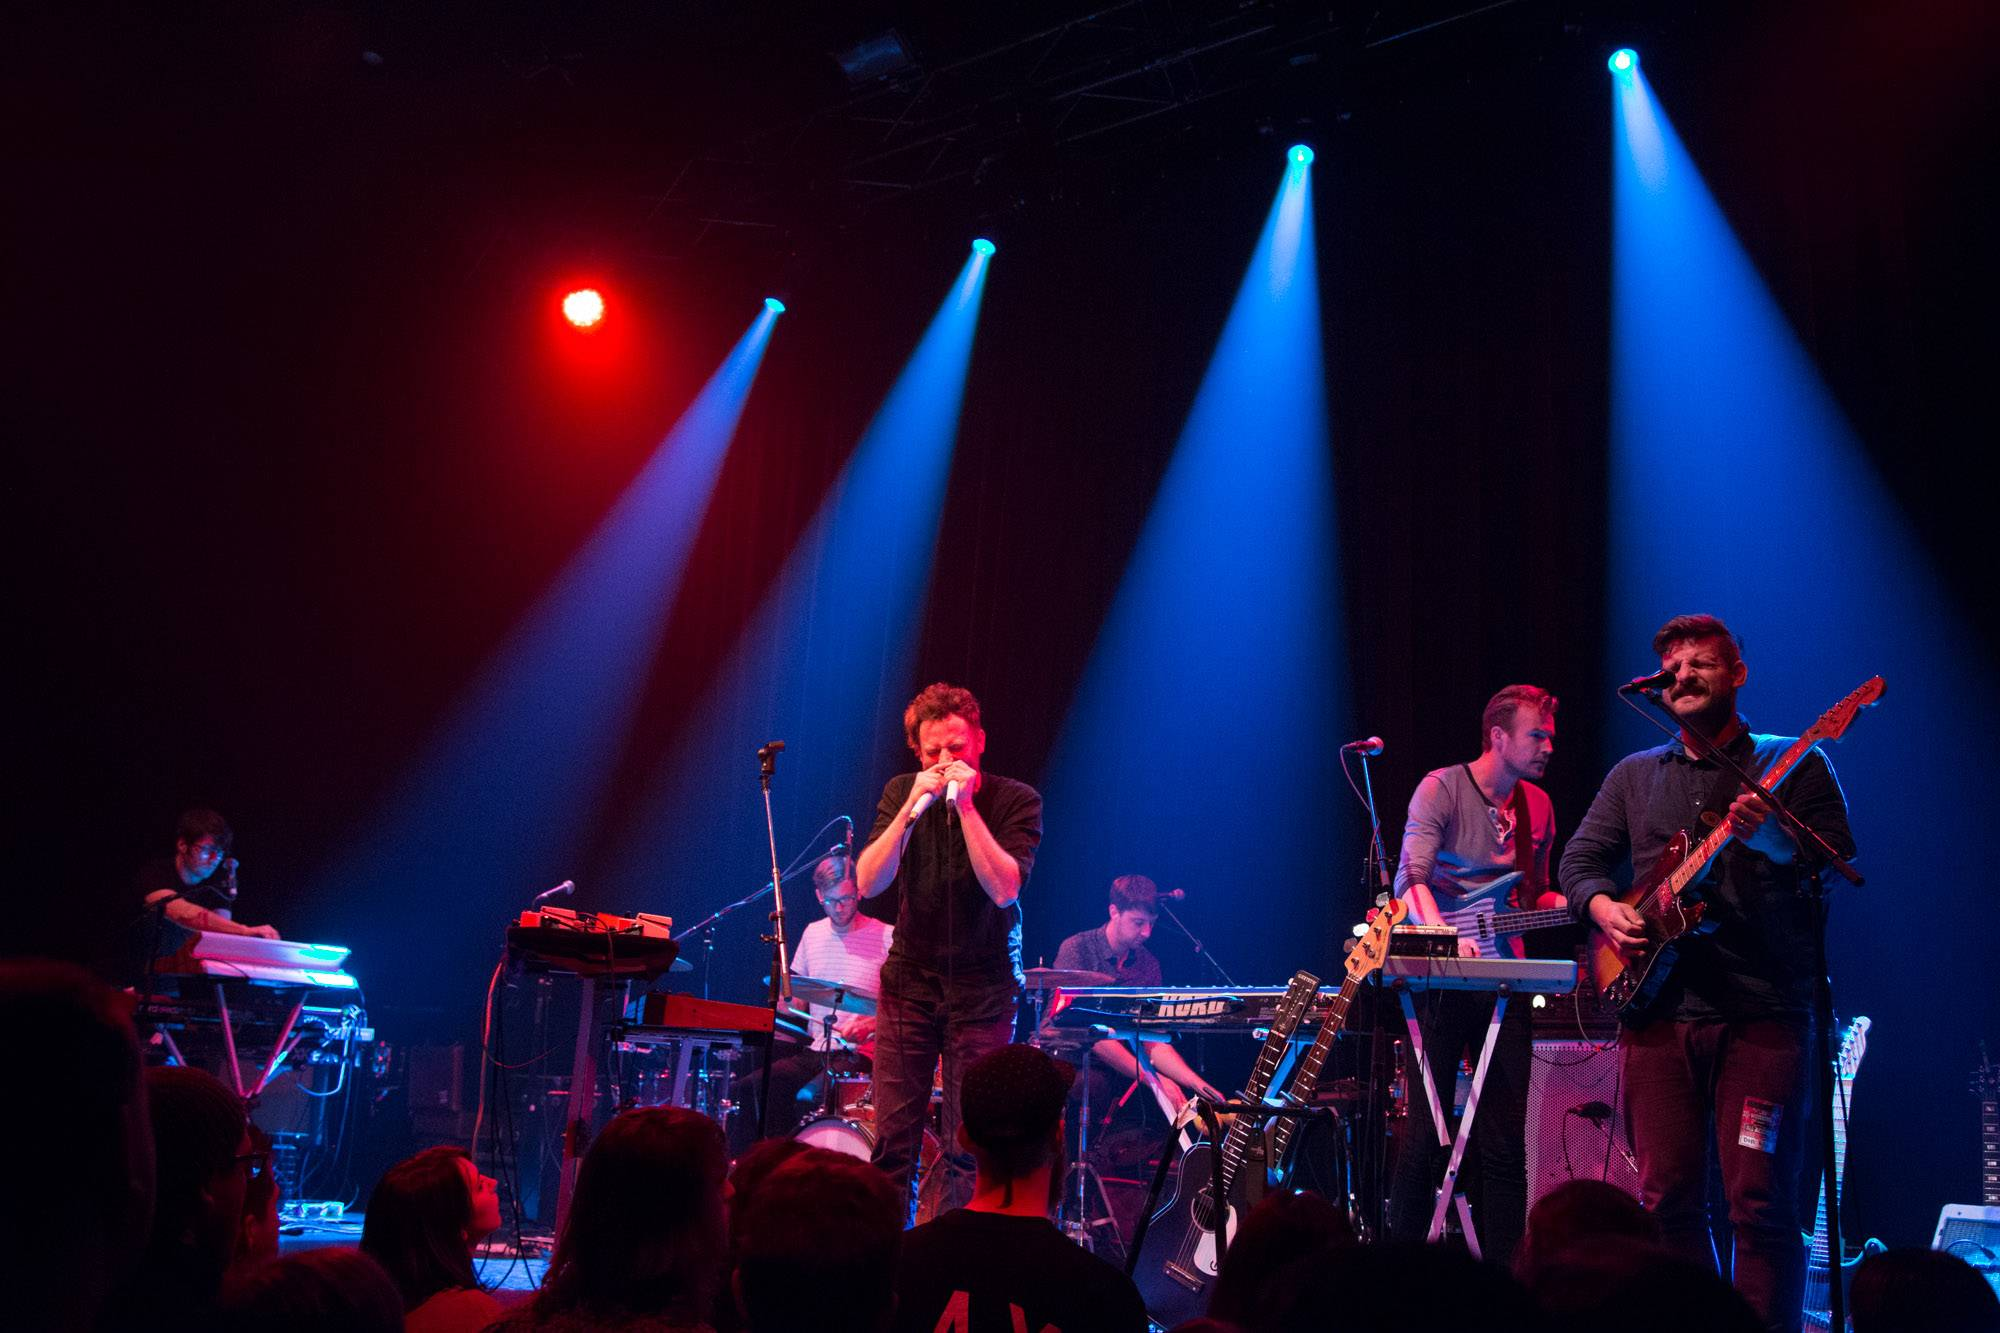 Royal Canoe at the Imperial, Vancouver, June 16 2016. Kirk Chantraine photo.